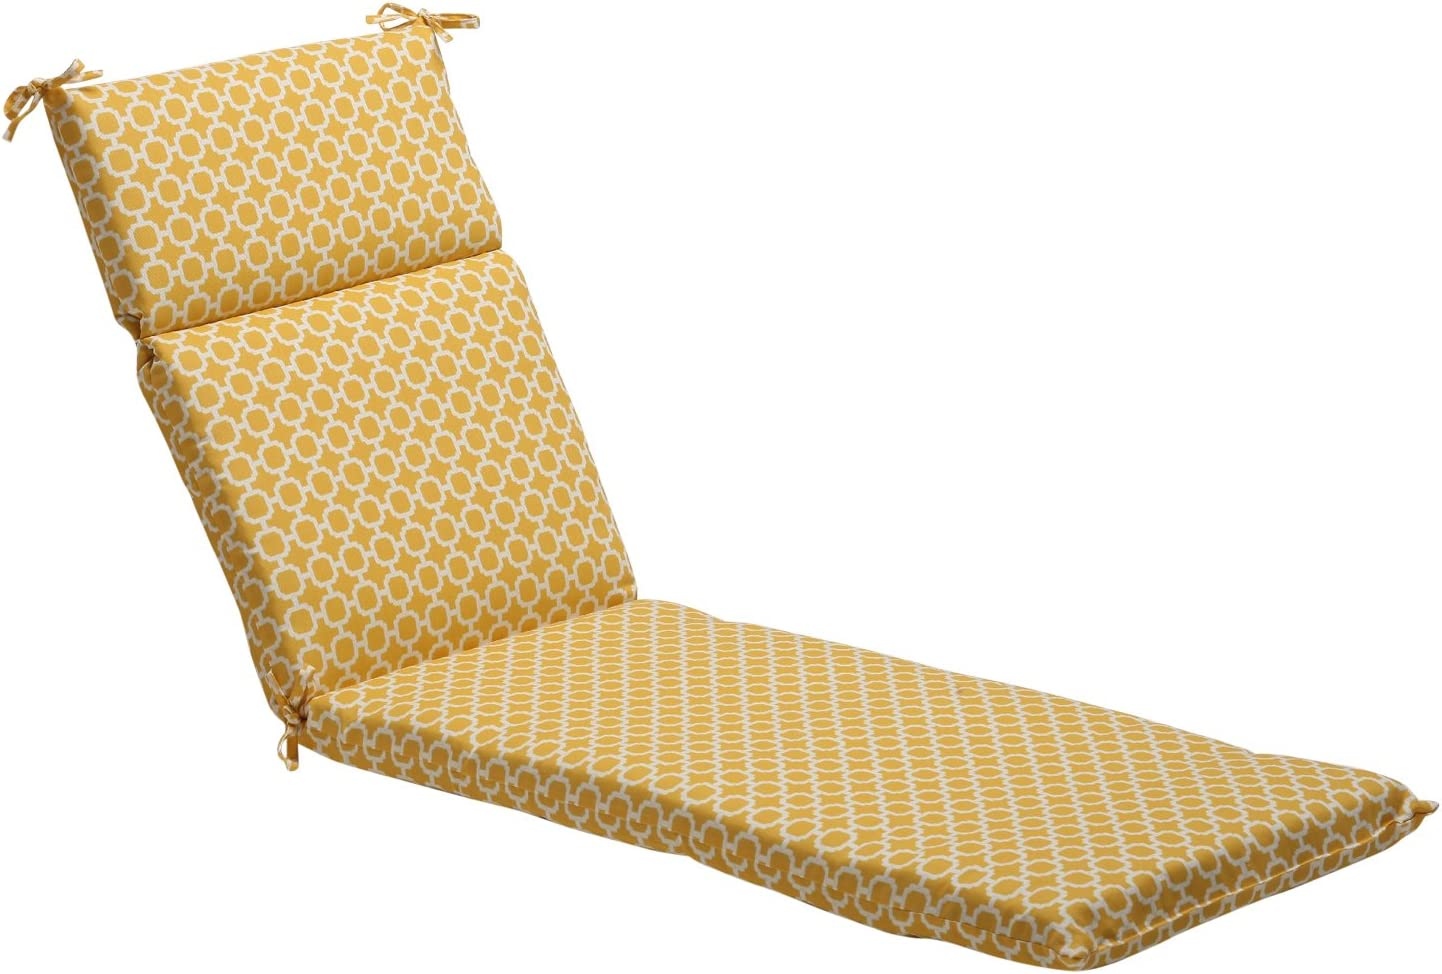 "Pillow Perfect Outdoor/Indoor Hockley Banana Chaise Lounge Cushion, 72.5"" x 21"", Yellow"